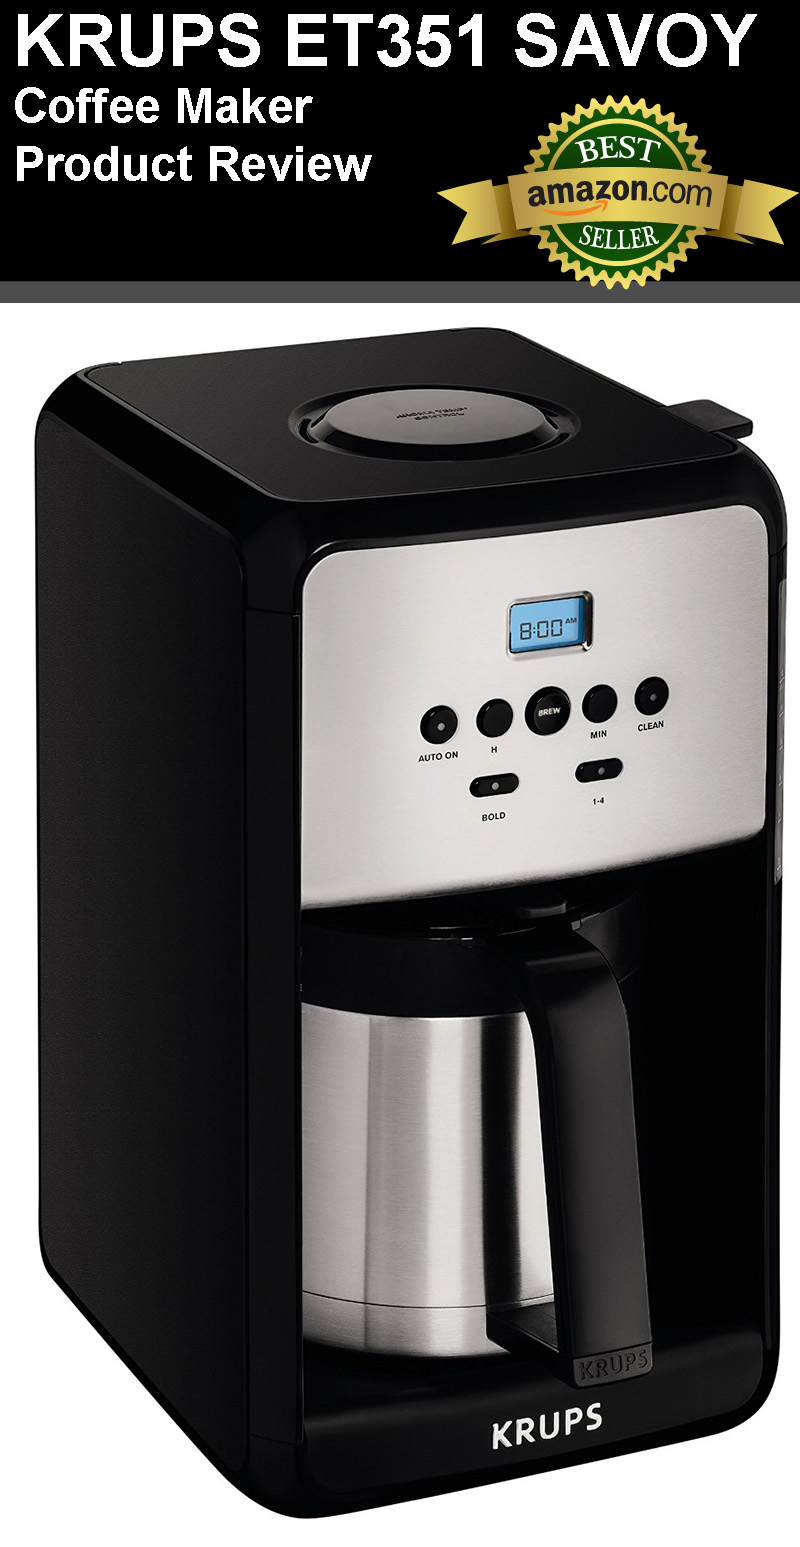 Krups Coffee Maker Reviews Ratings : KRUPS ET351 SAVOY Coffee Maker Review